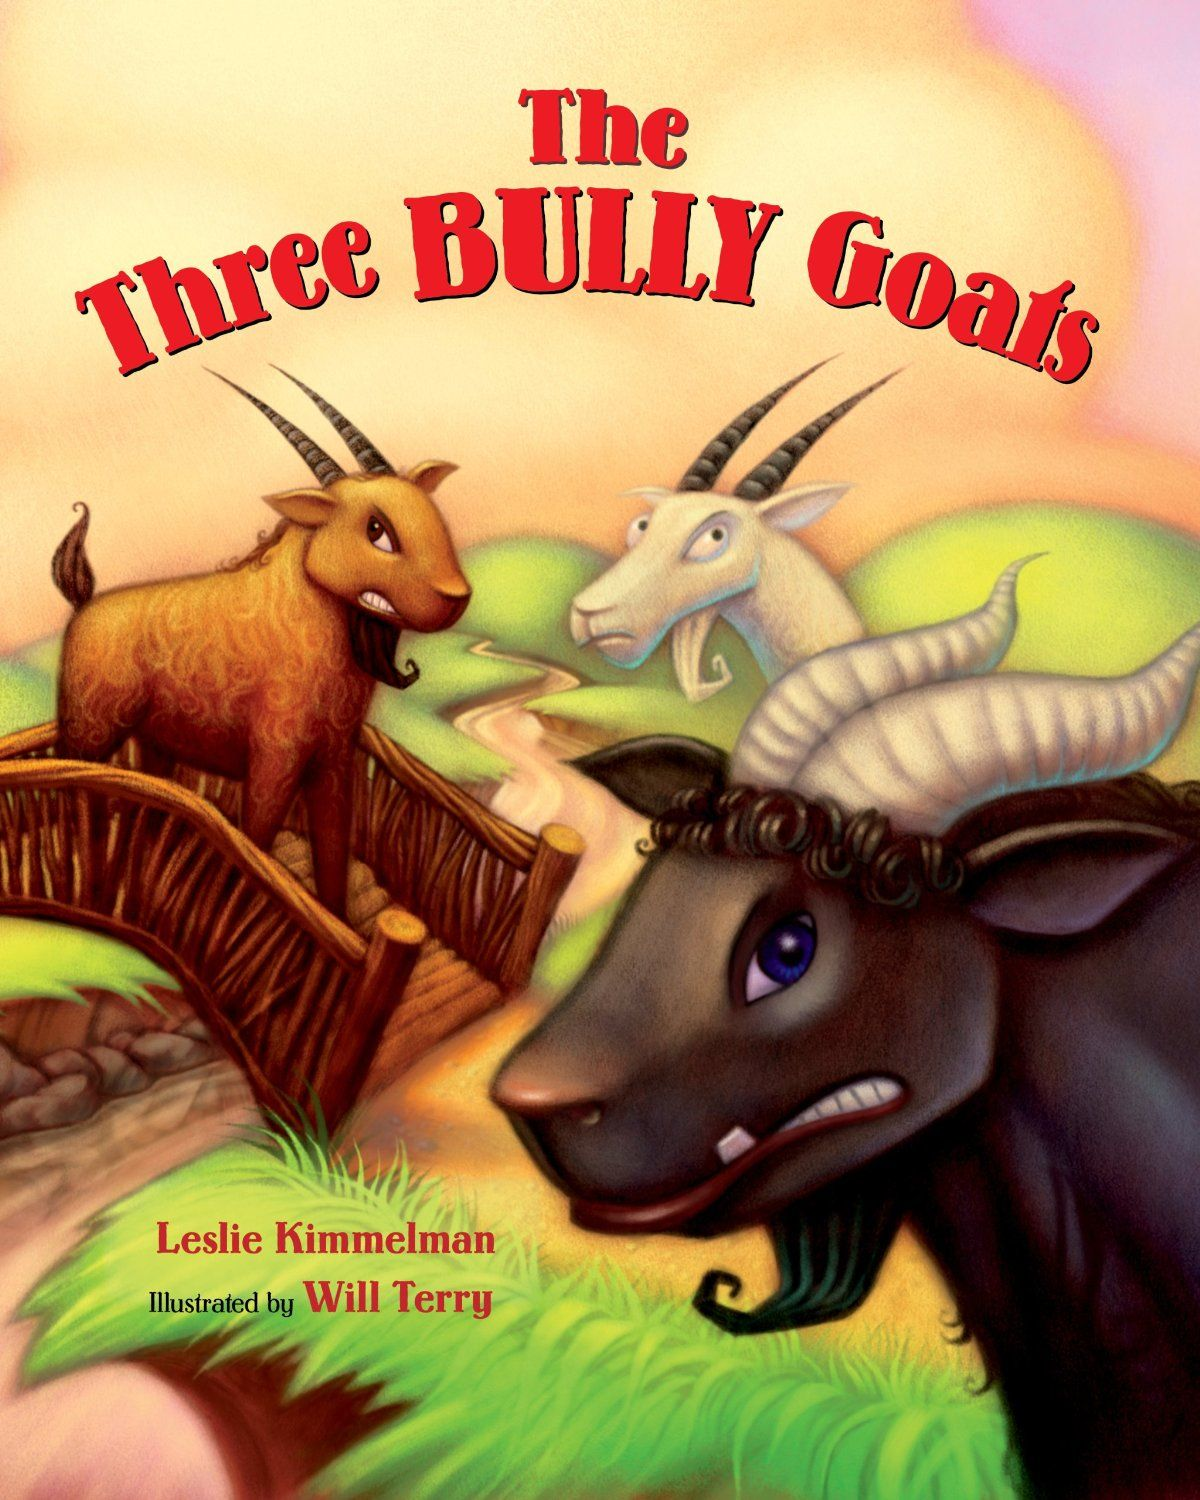 The Three Bully Goats Gruff Will Terry